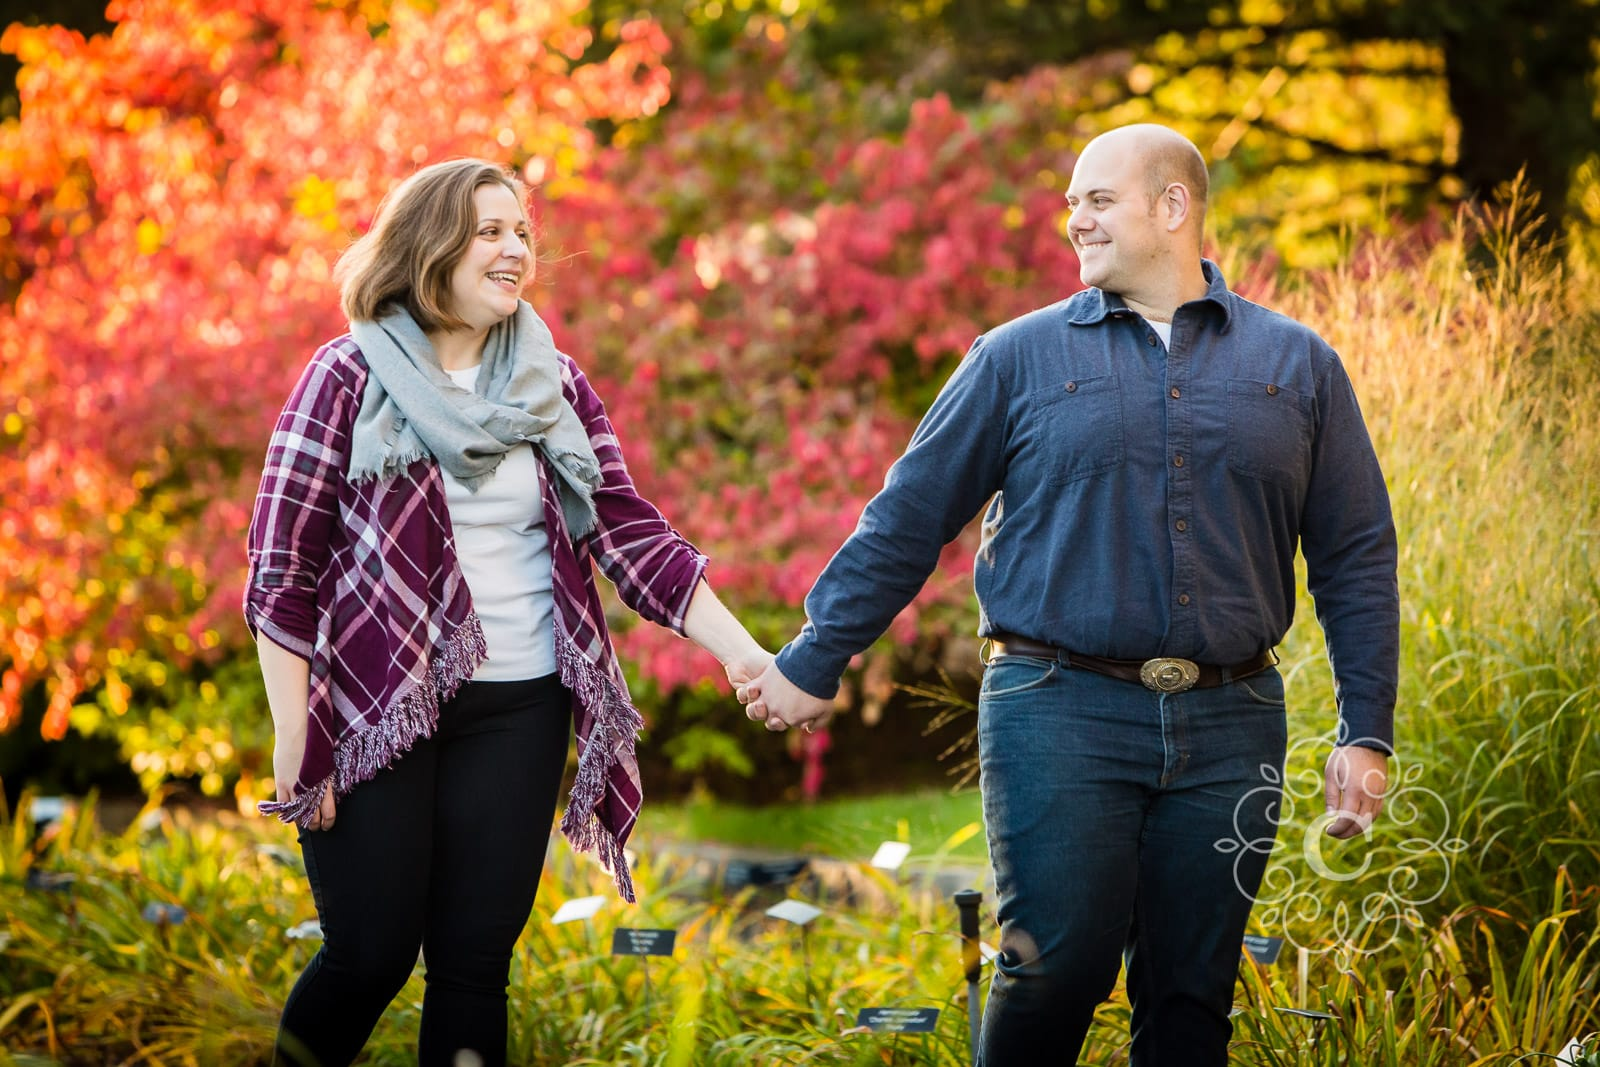 MN Landscape Arboretum Fall Engagement Photo